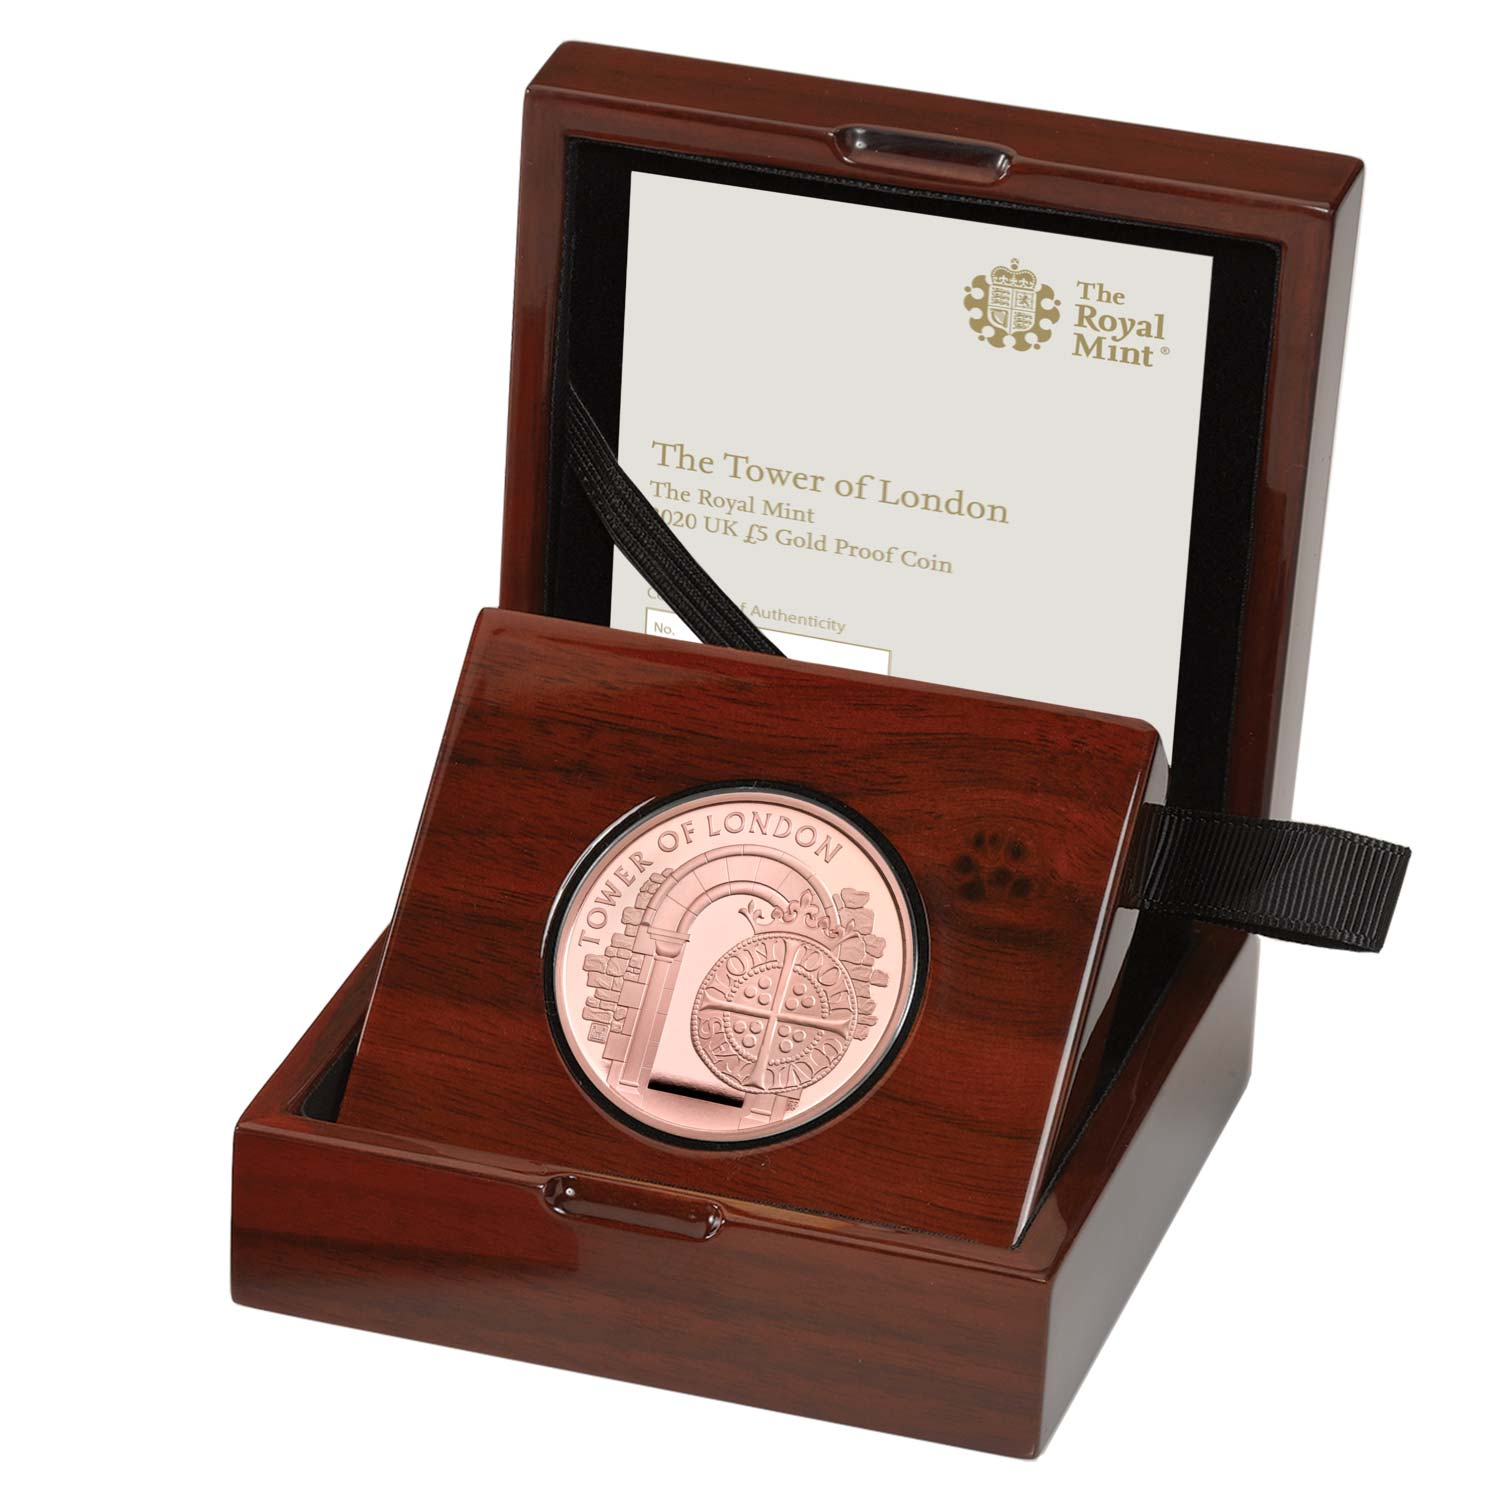 The Royal Mint 2020 UK £5 Gold Proof Coin